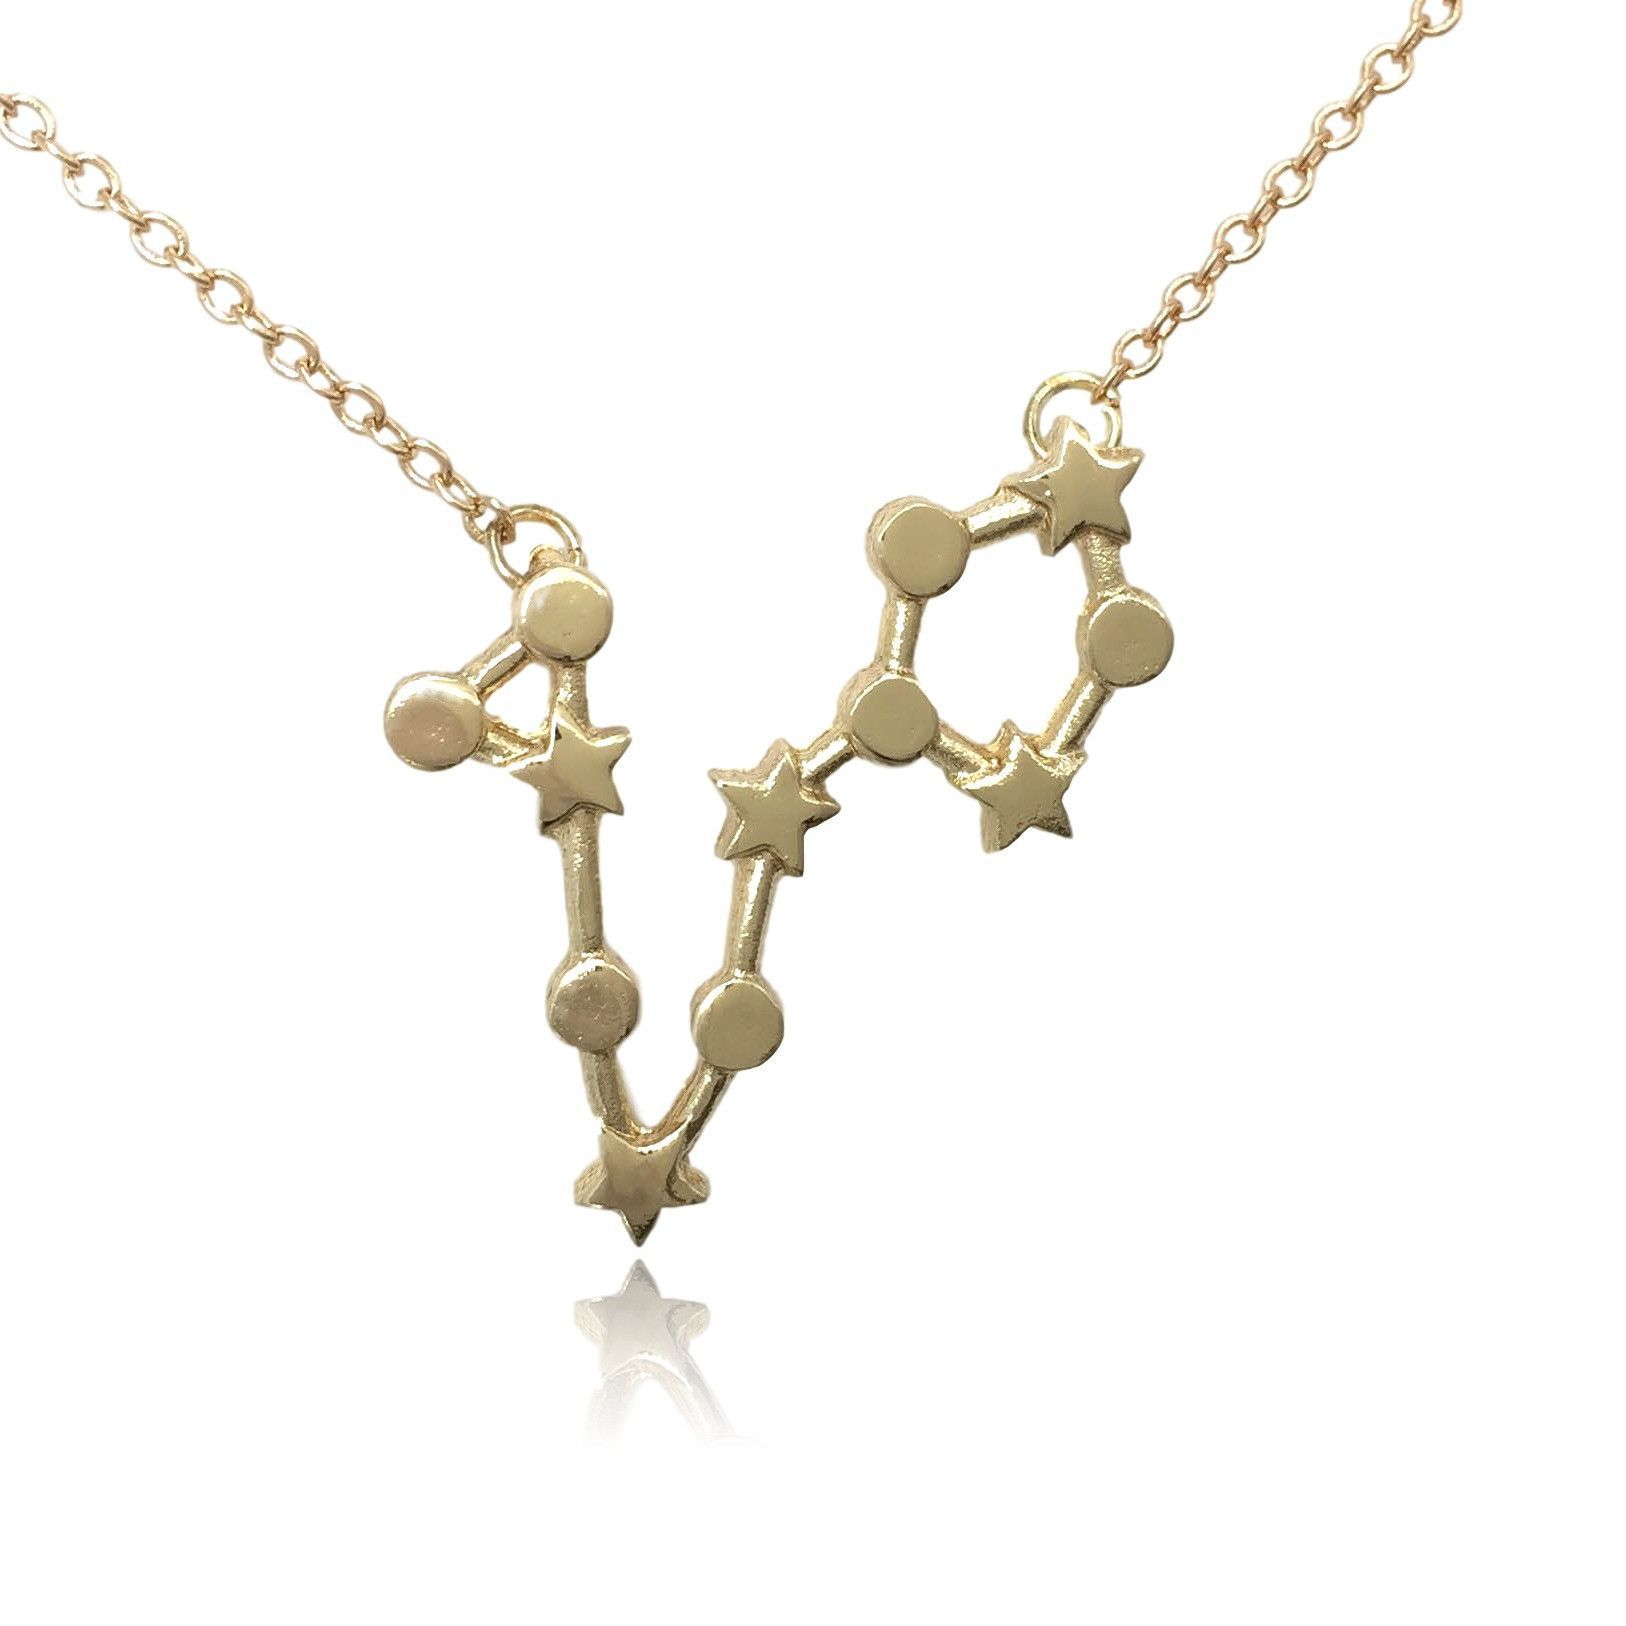 Pisces zodiac constellation sign symbol pendant necklace products